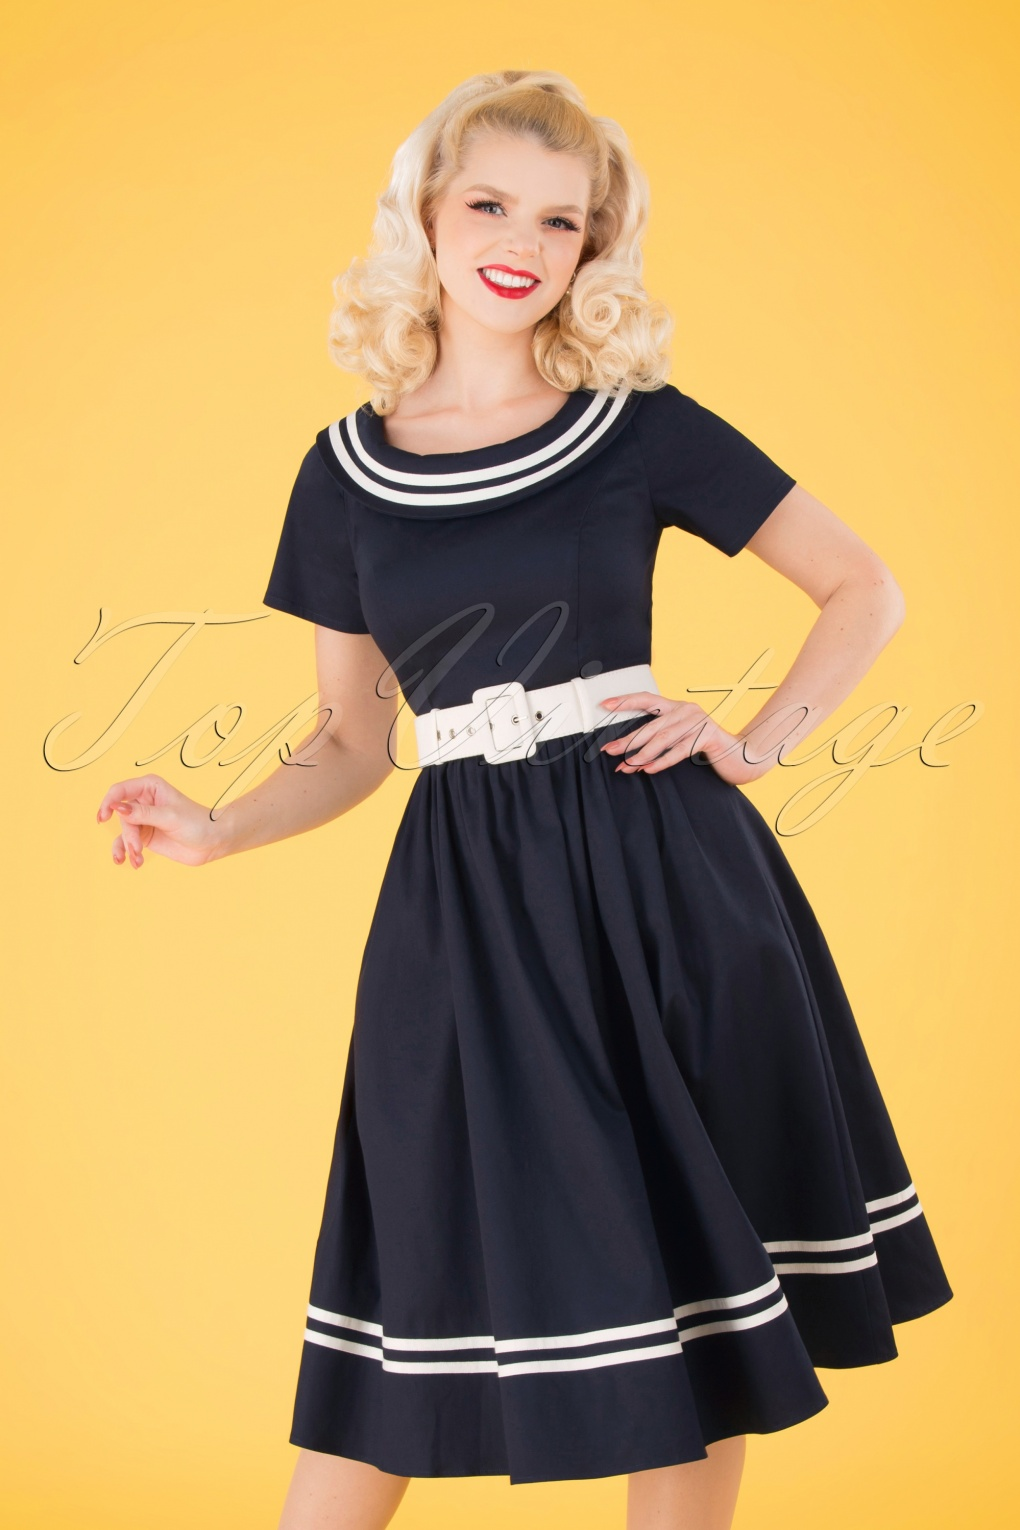 500 Vintage Style Dresses for Sale | Vintage Inspired Dresses 50s Tina Nautical Swing Dress in Navy and White £76.29 AT vintagedancer.com